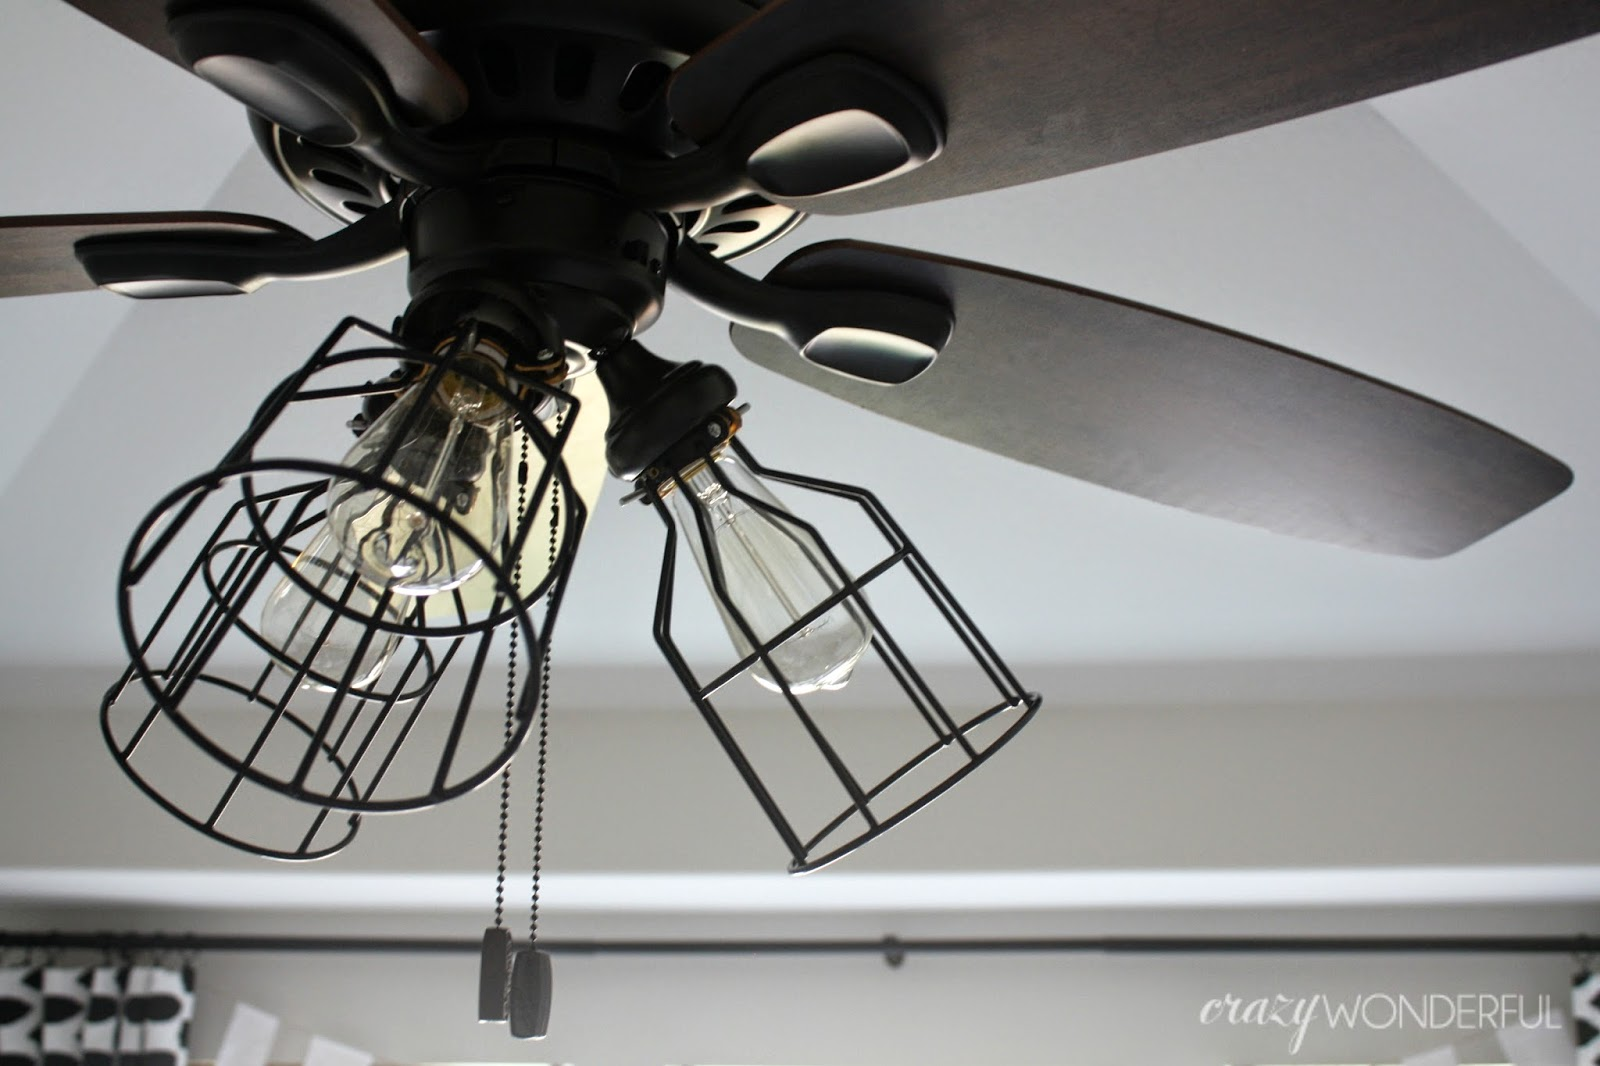 Diy Cage Light Ceiling Fan Crazy Wonderful Wiring A Up